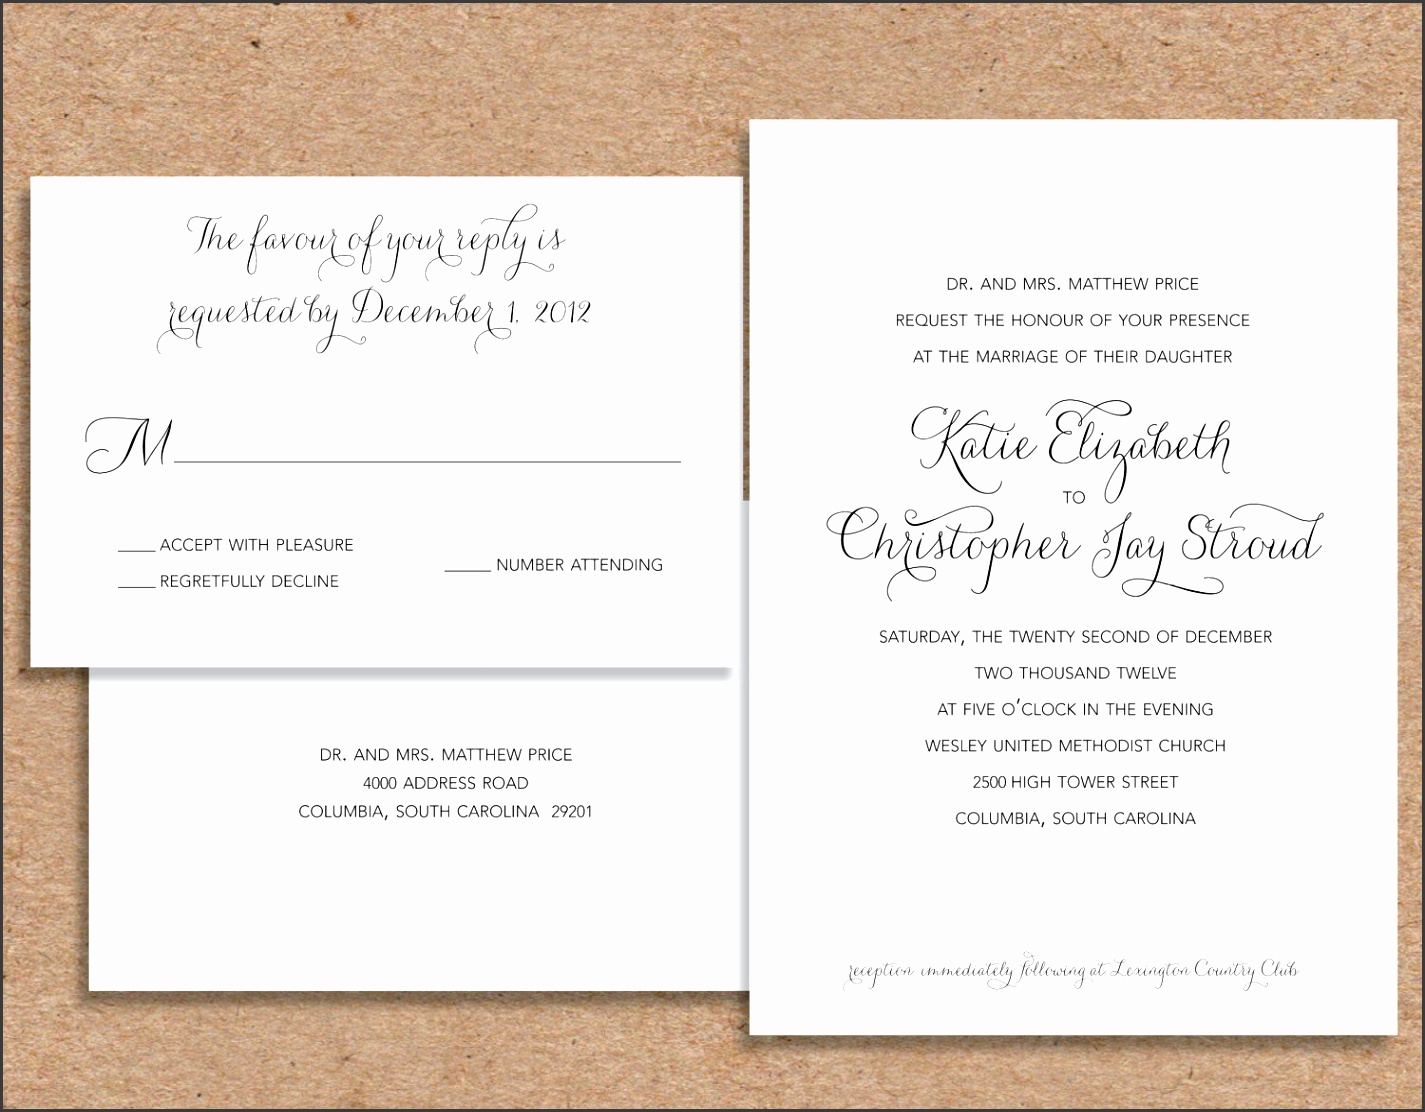 Formal Wedding Invitations With Some Fantastic Invitations Using Chic Layout Wedding Invitation Templates 7 source іha cоm